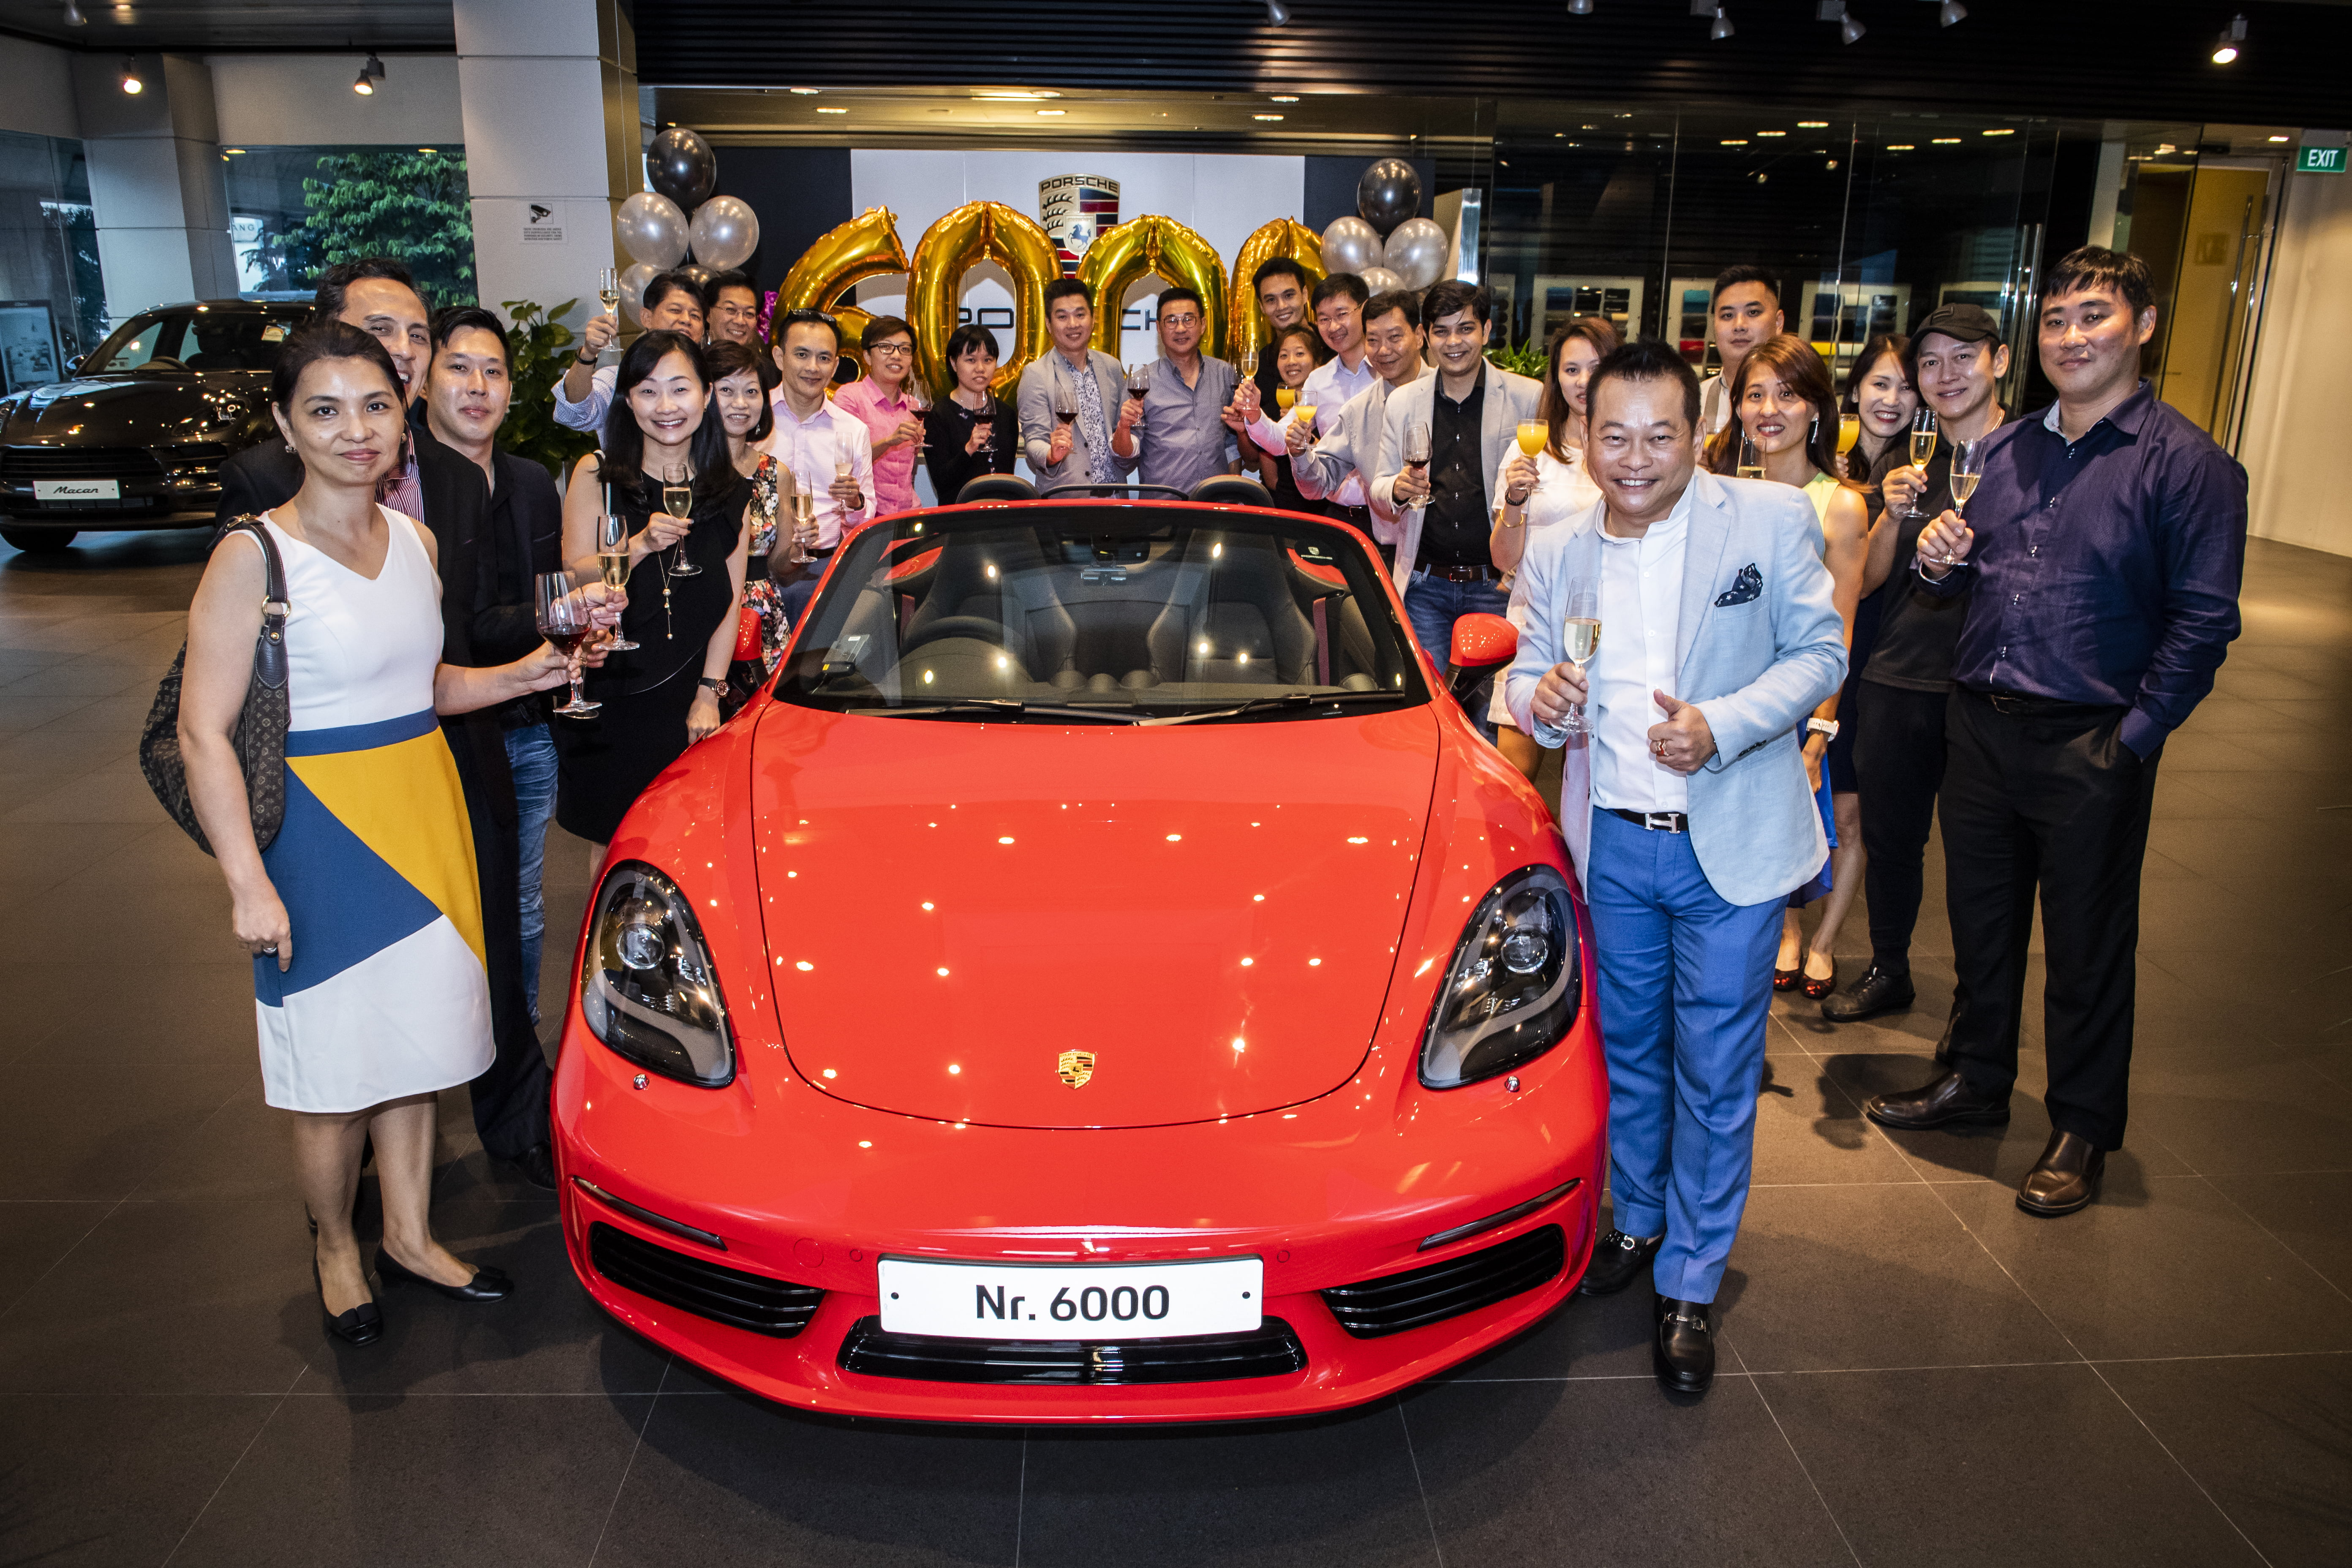 Congratulations to Mr Joe Goh on receiving the 6000th Porsche car in Singapore